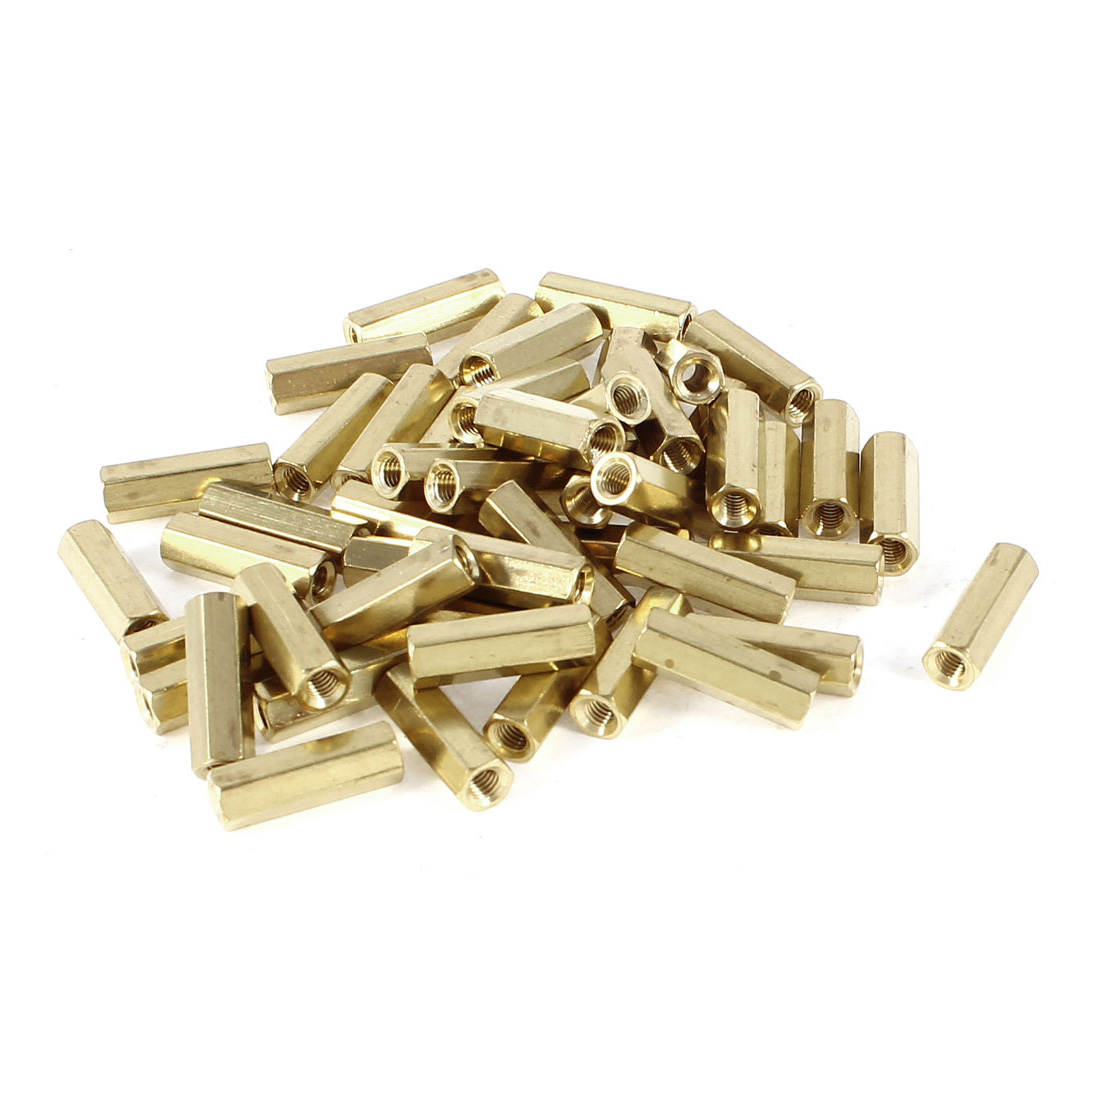 50 Pieces M3 Female Threaded PCB Brass Standoff Spacer 15mm High Gold Tone M3x15